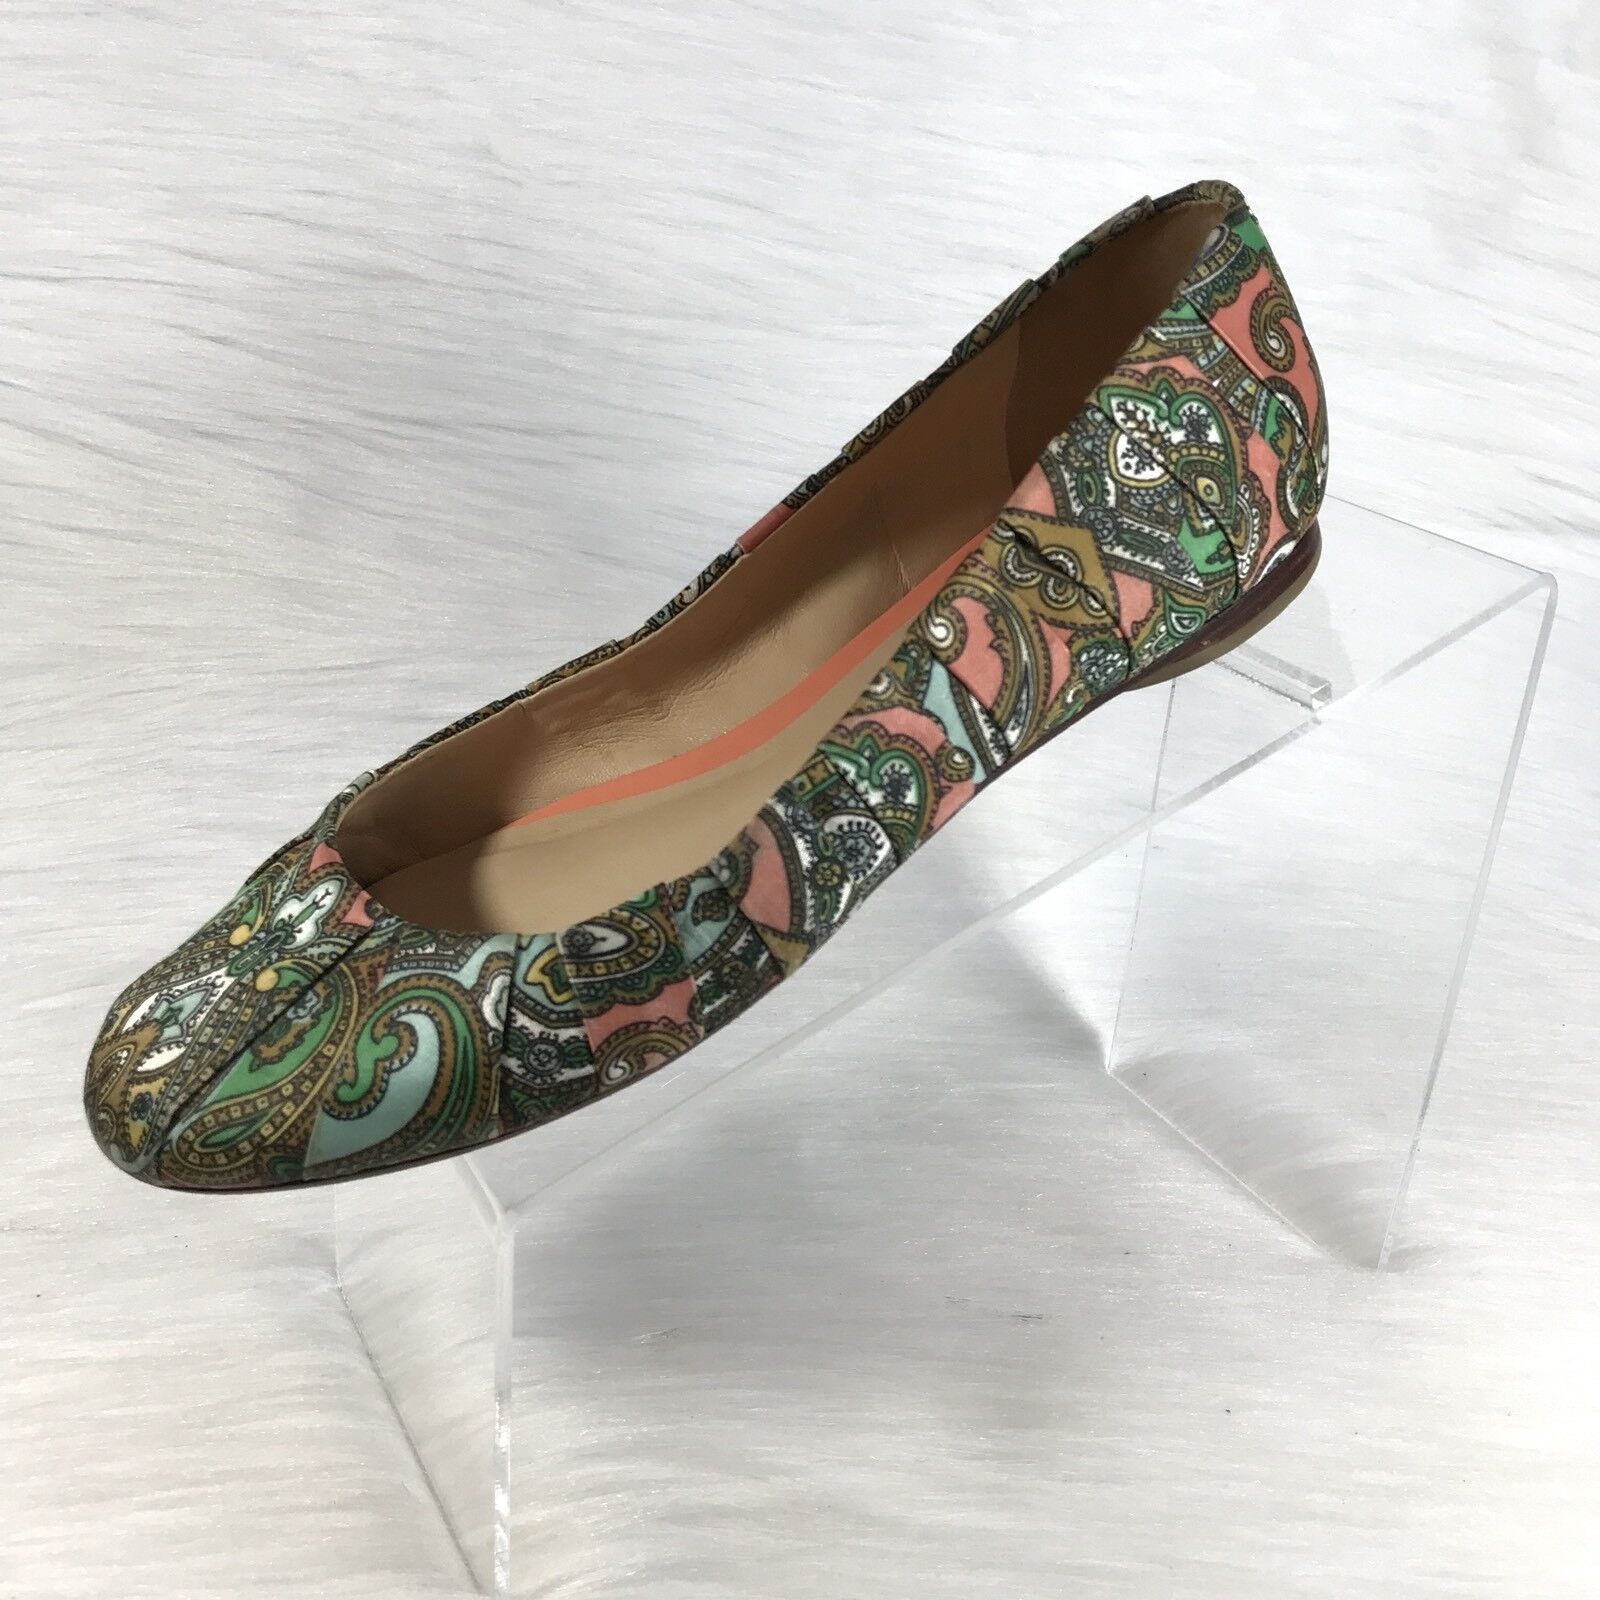 Talbots Ballet Flats Green Pink Parsley Canvas Slip on shoes Size 8.5 W